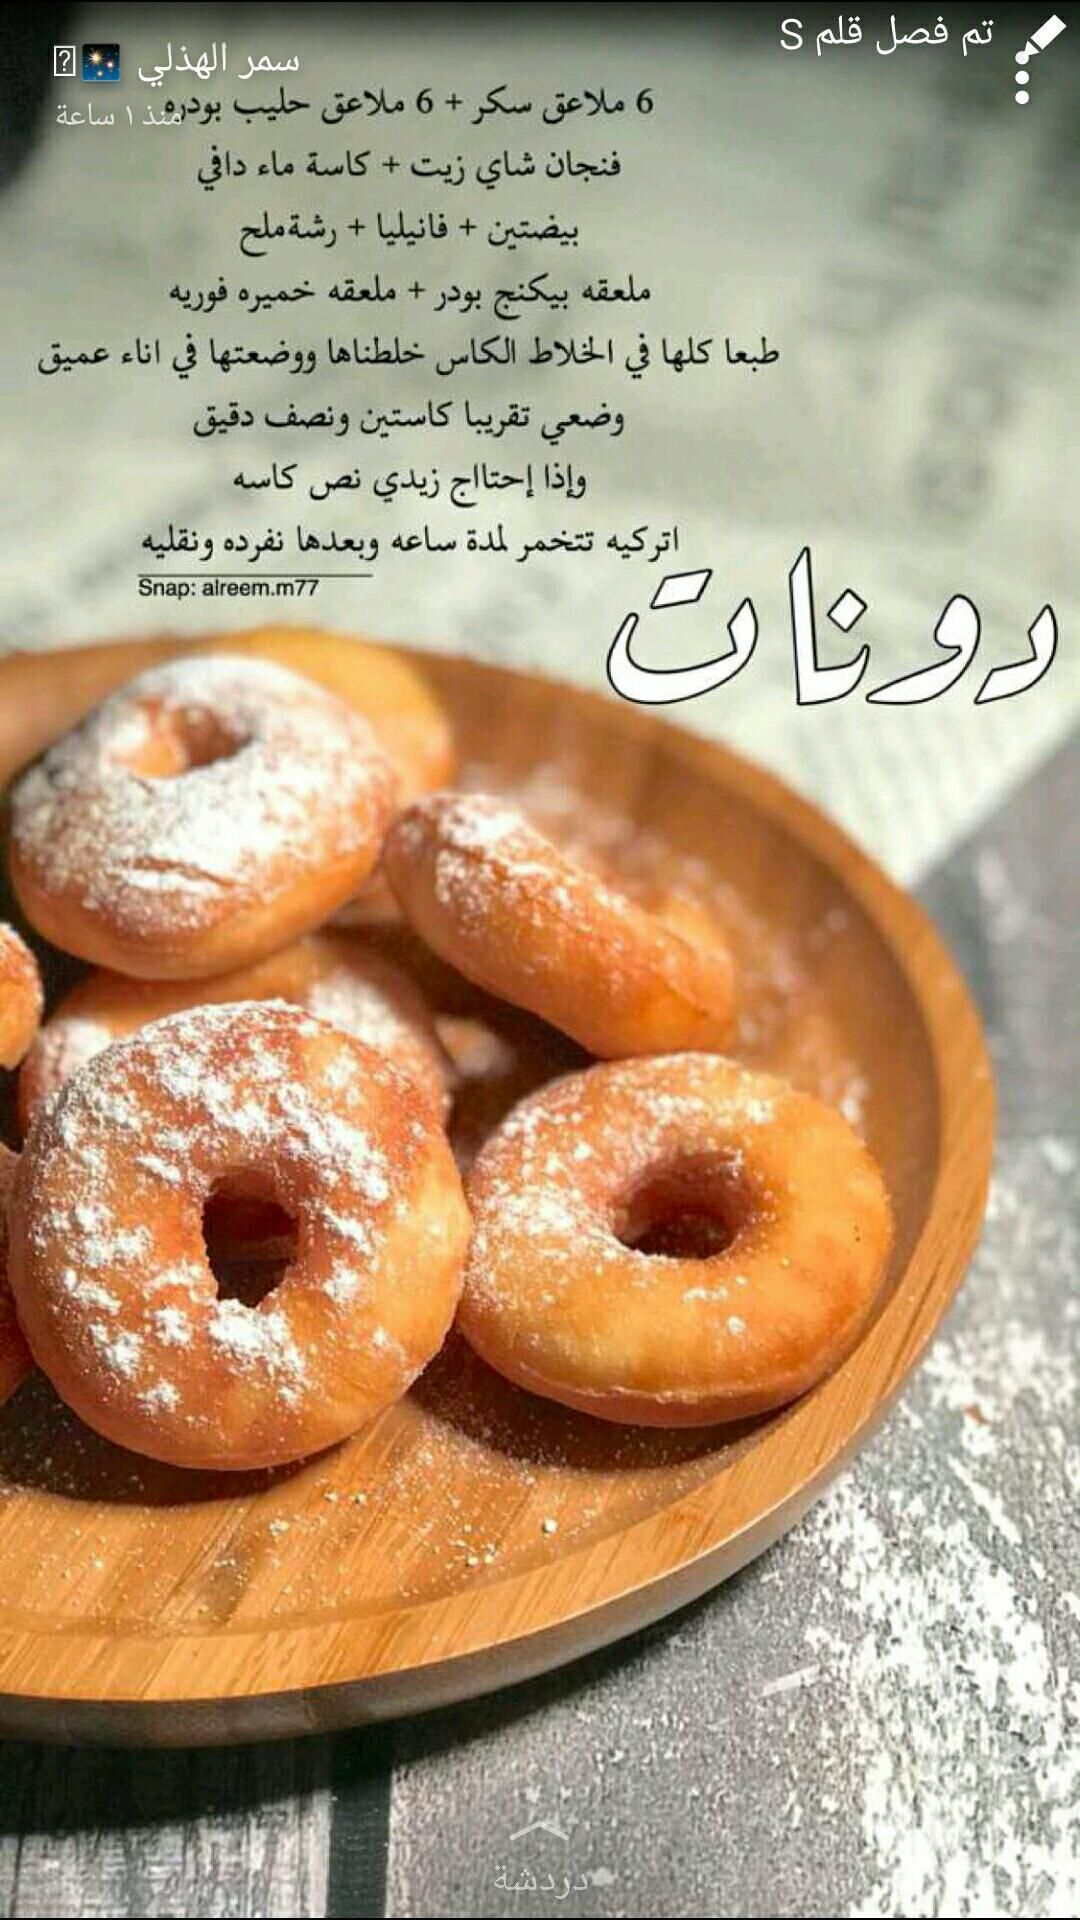 Pin By Tote On حلويات Yummy Food Dessert Cooking Recipes Desserts Arabic Food